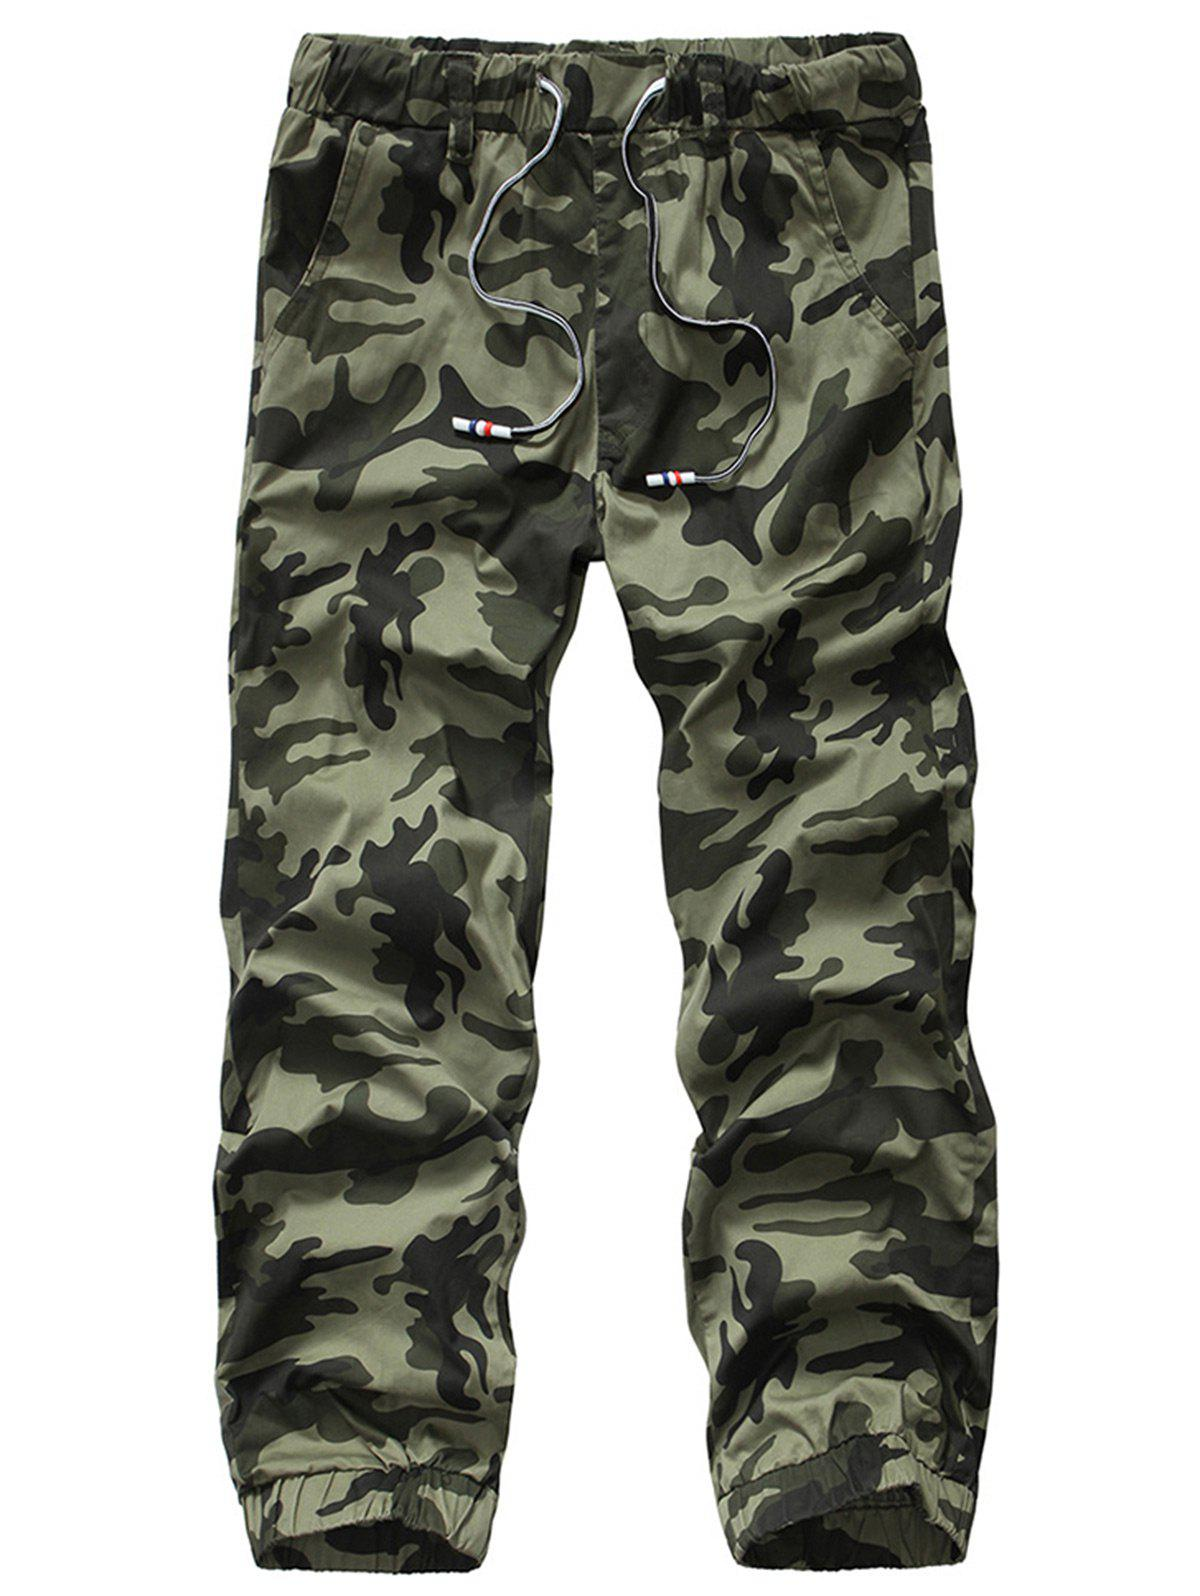 Shop Camouflage Drawstring Beam Feet Jogger Pants